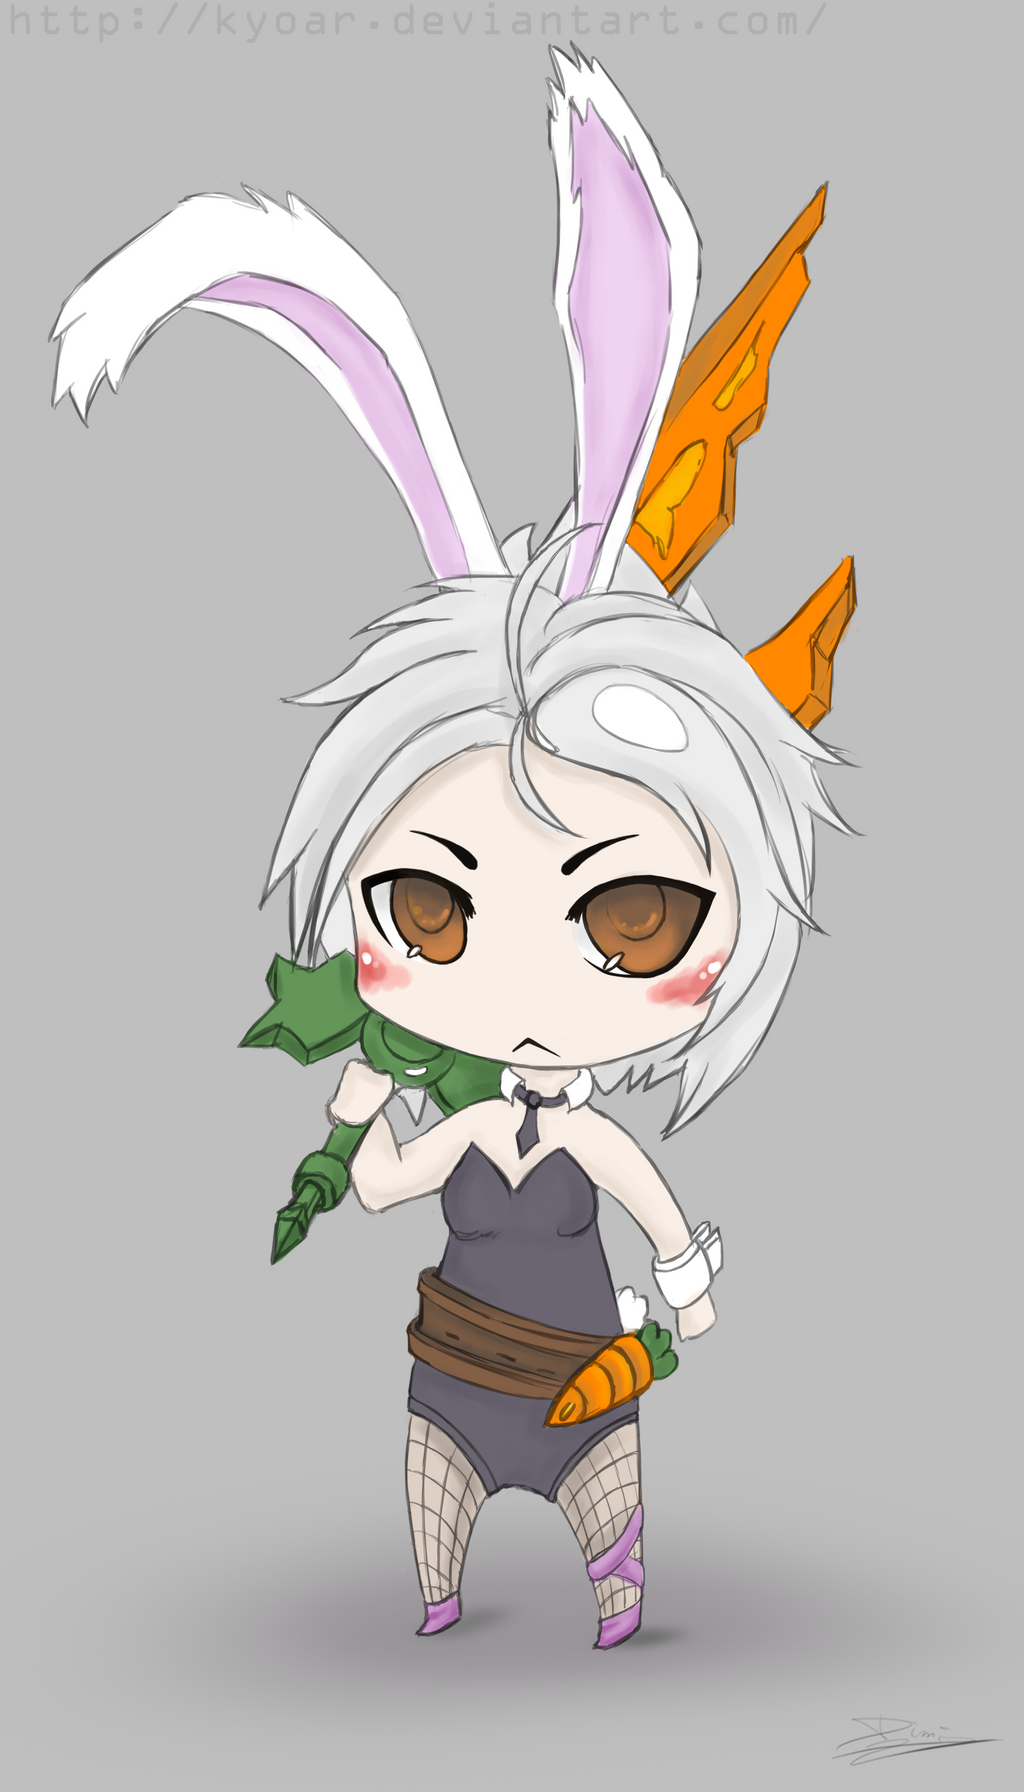 battle bunny riven chibi by kyoar watch fan art digital art drawings ...Bunny Riven Fan Art